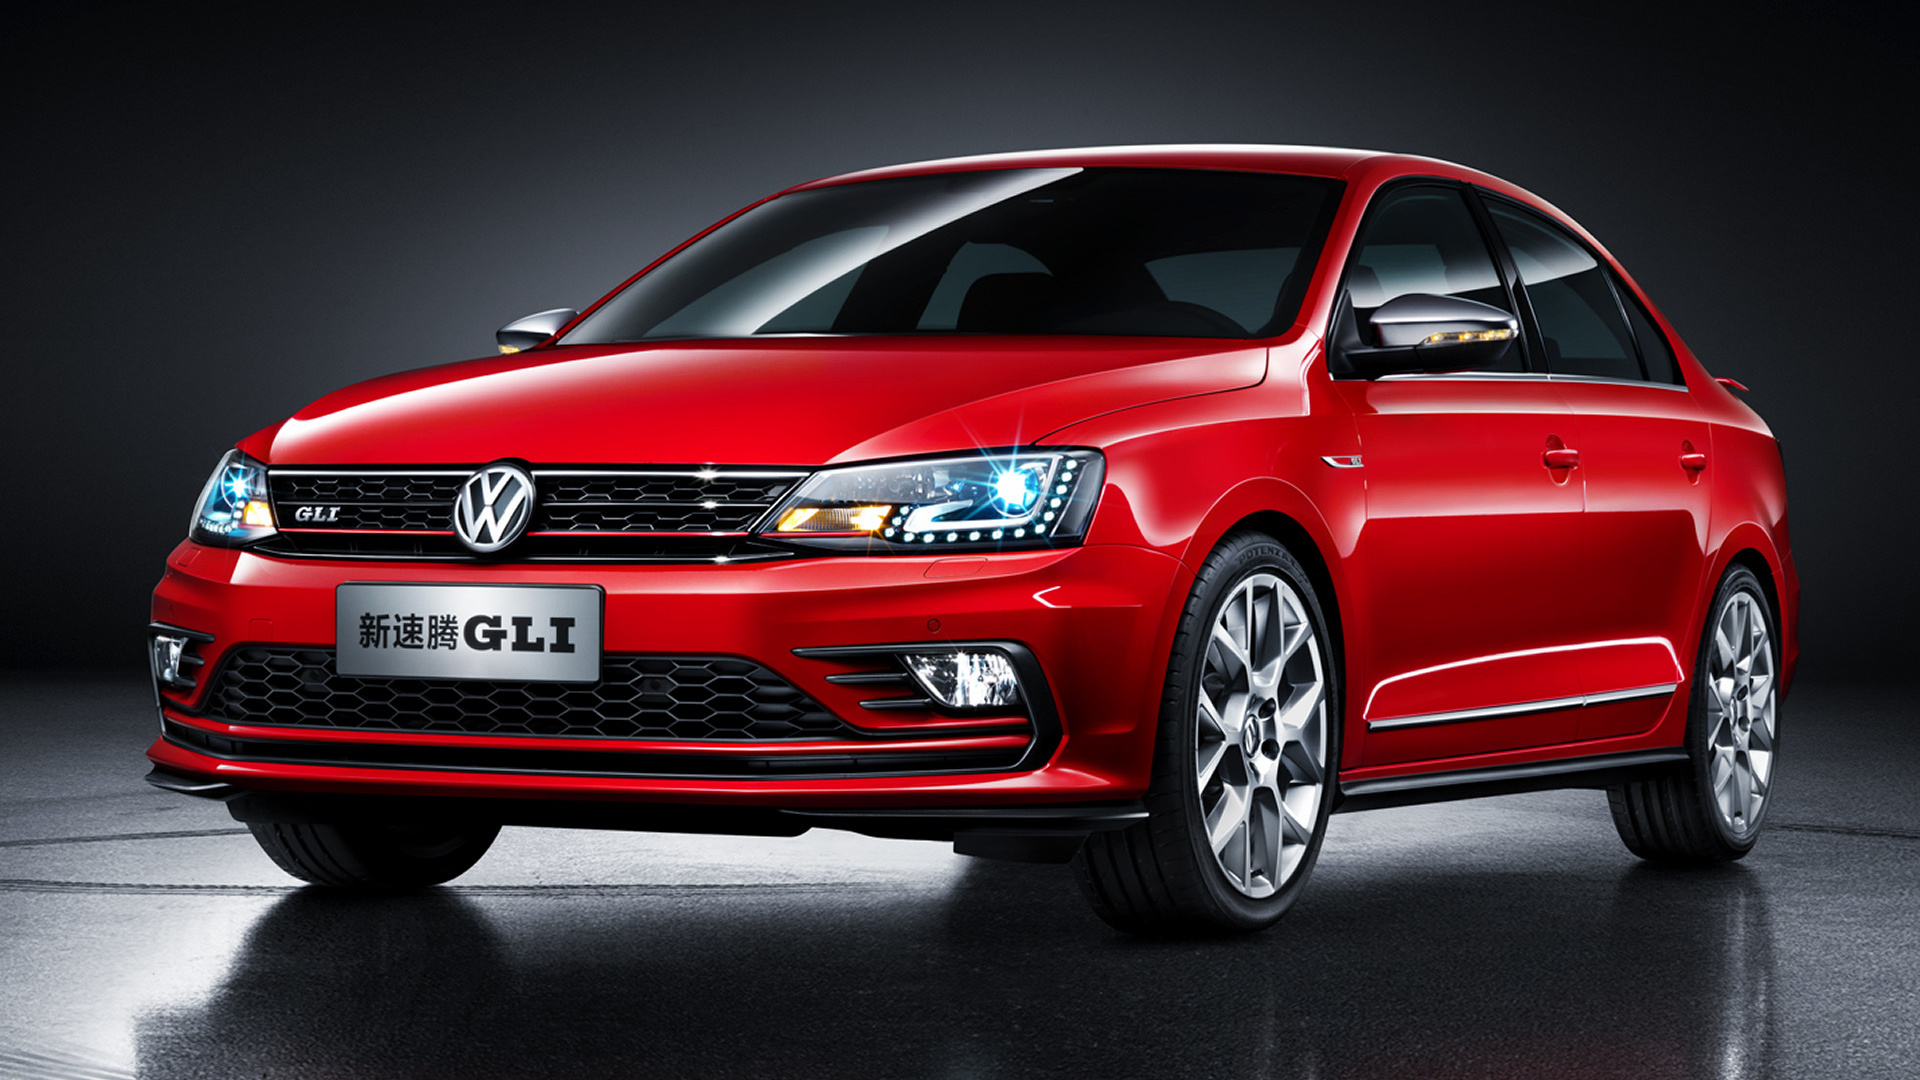 2016 Volkswagen Sagitar Gli Wallpapers And Hd Images